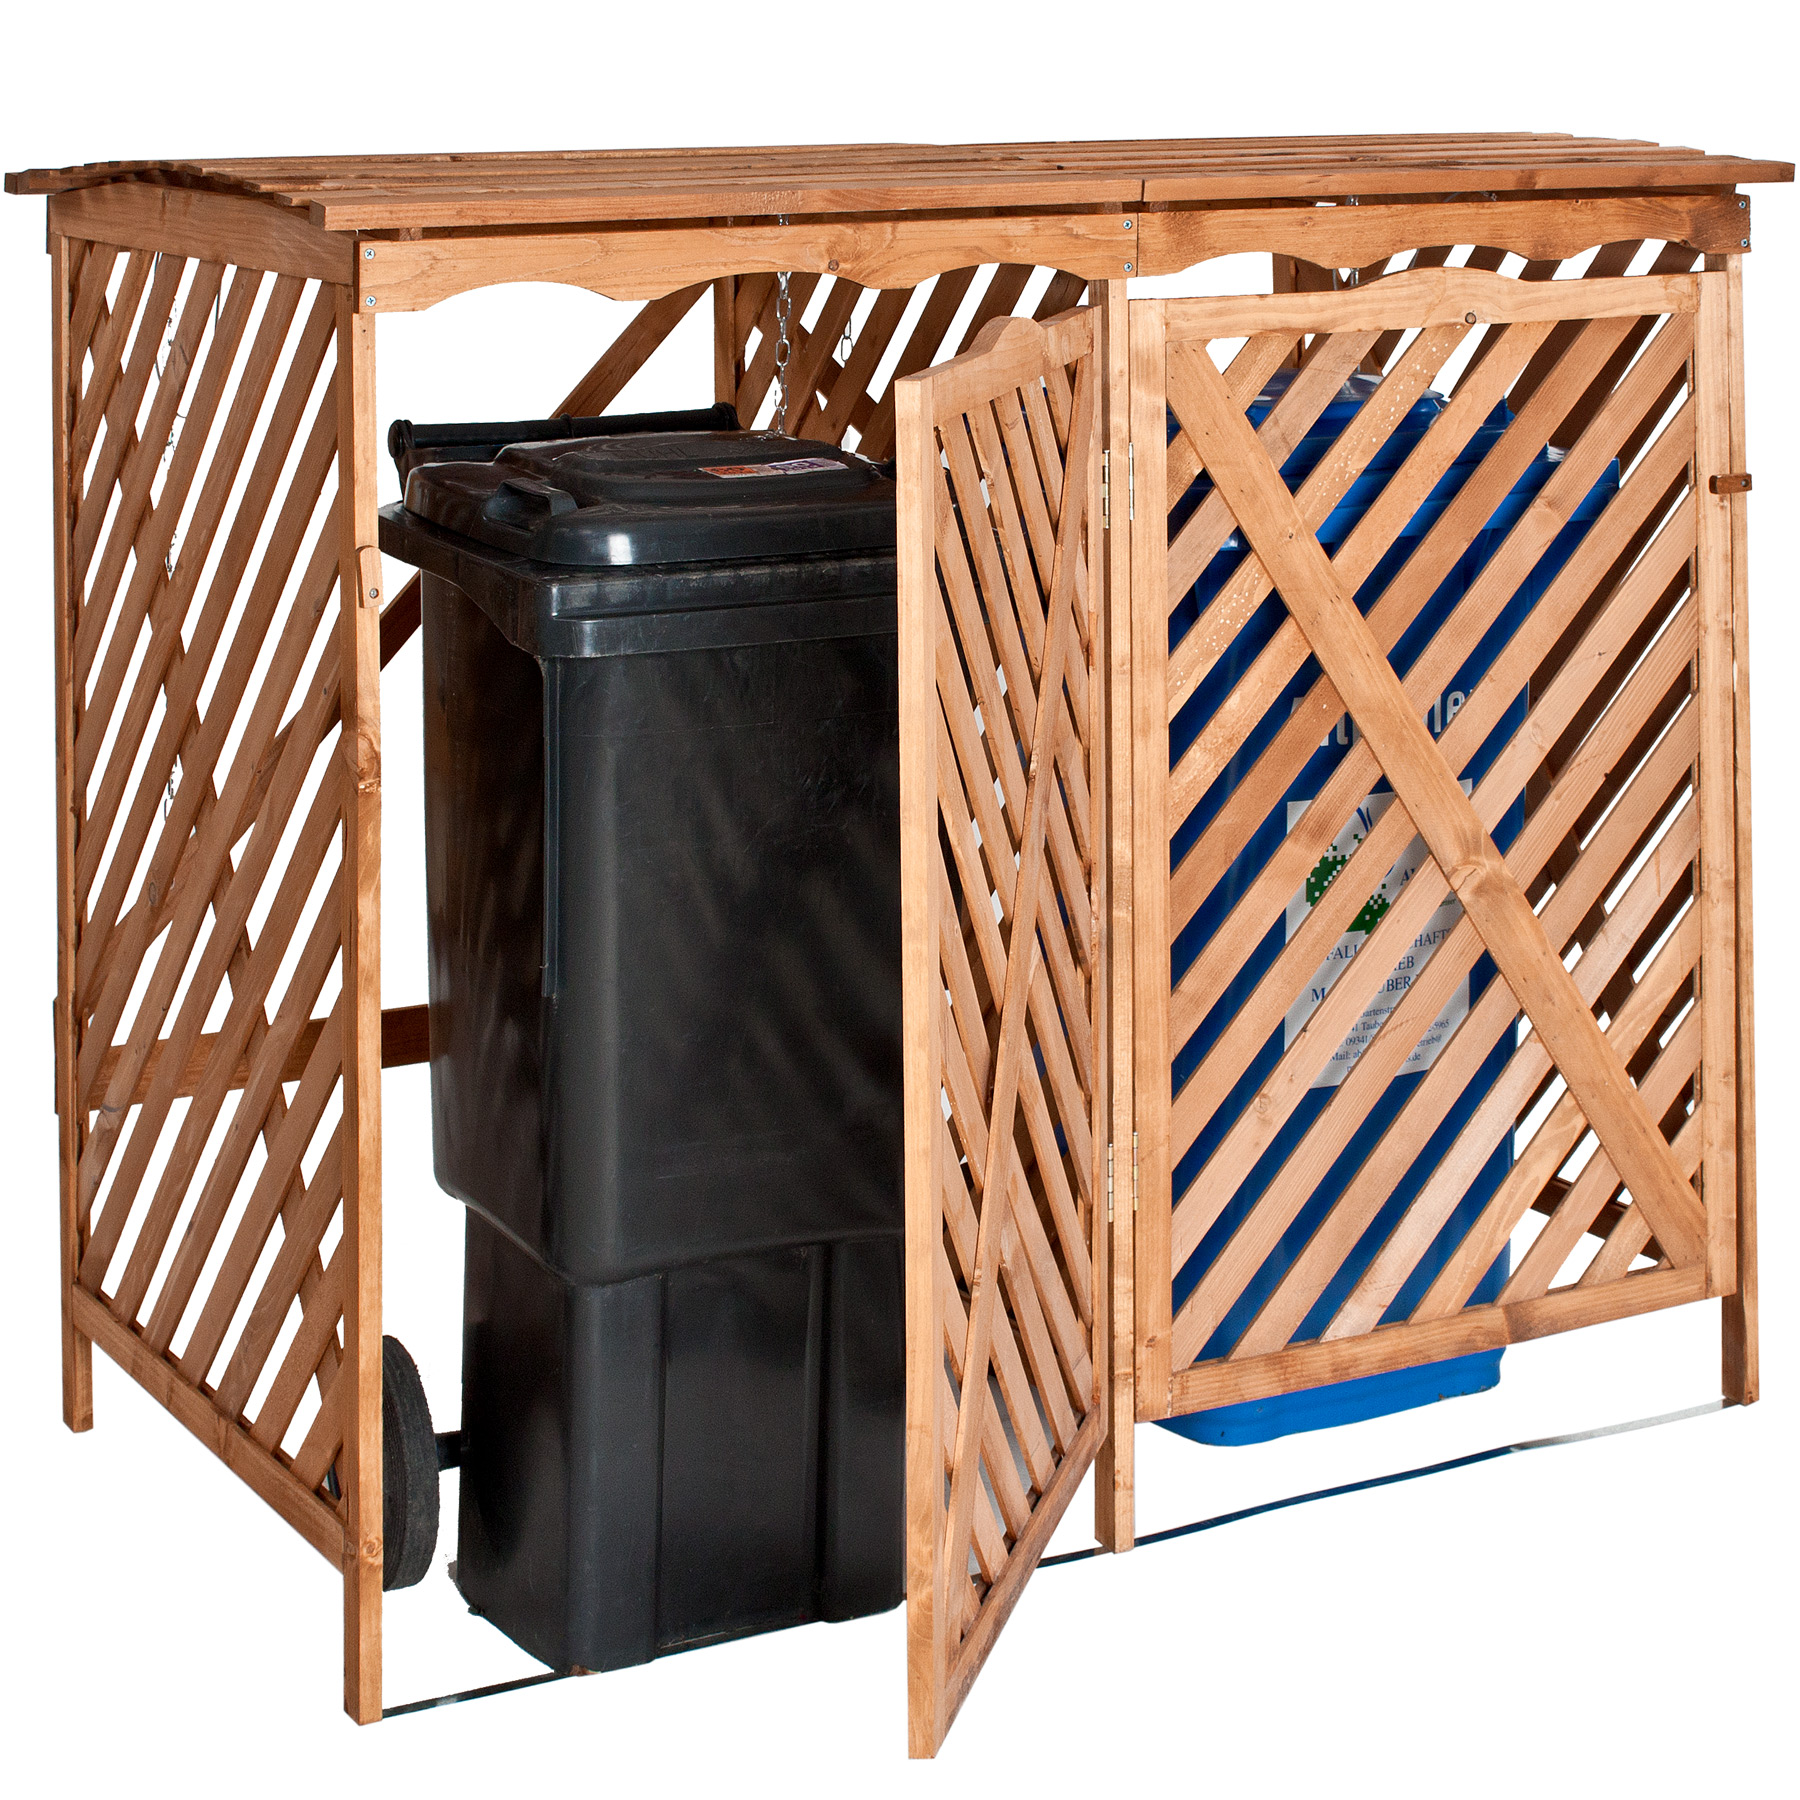 double wooden bin storage screen rubbish wheelie box cover garden store shed ebay. Black Bedroom Furniture Sets. Home Design Ideas